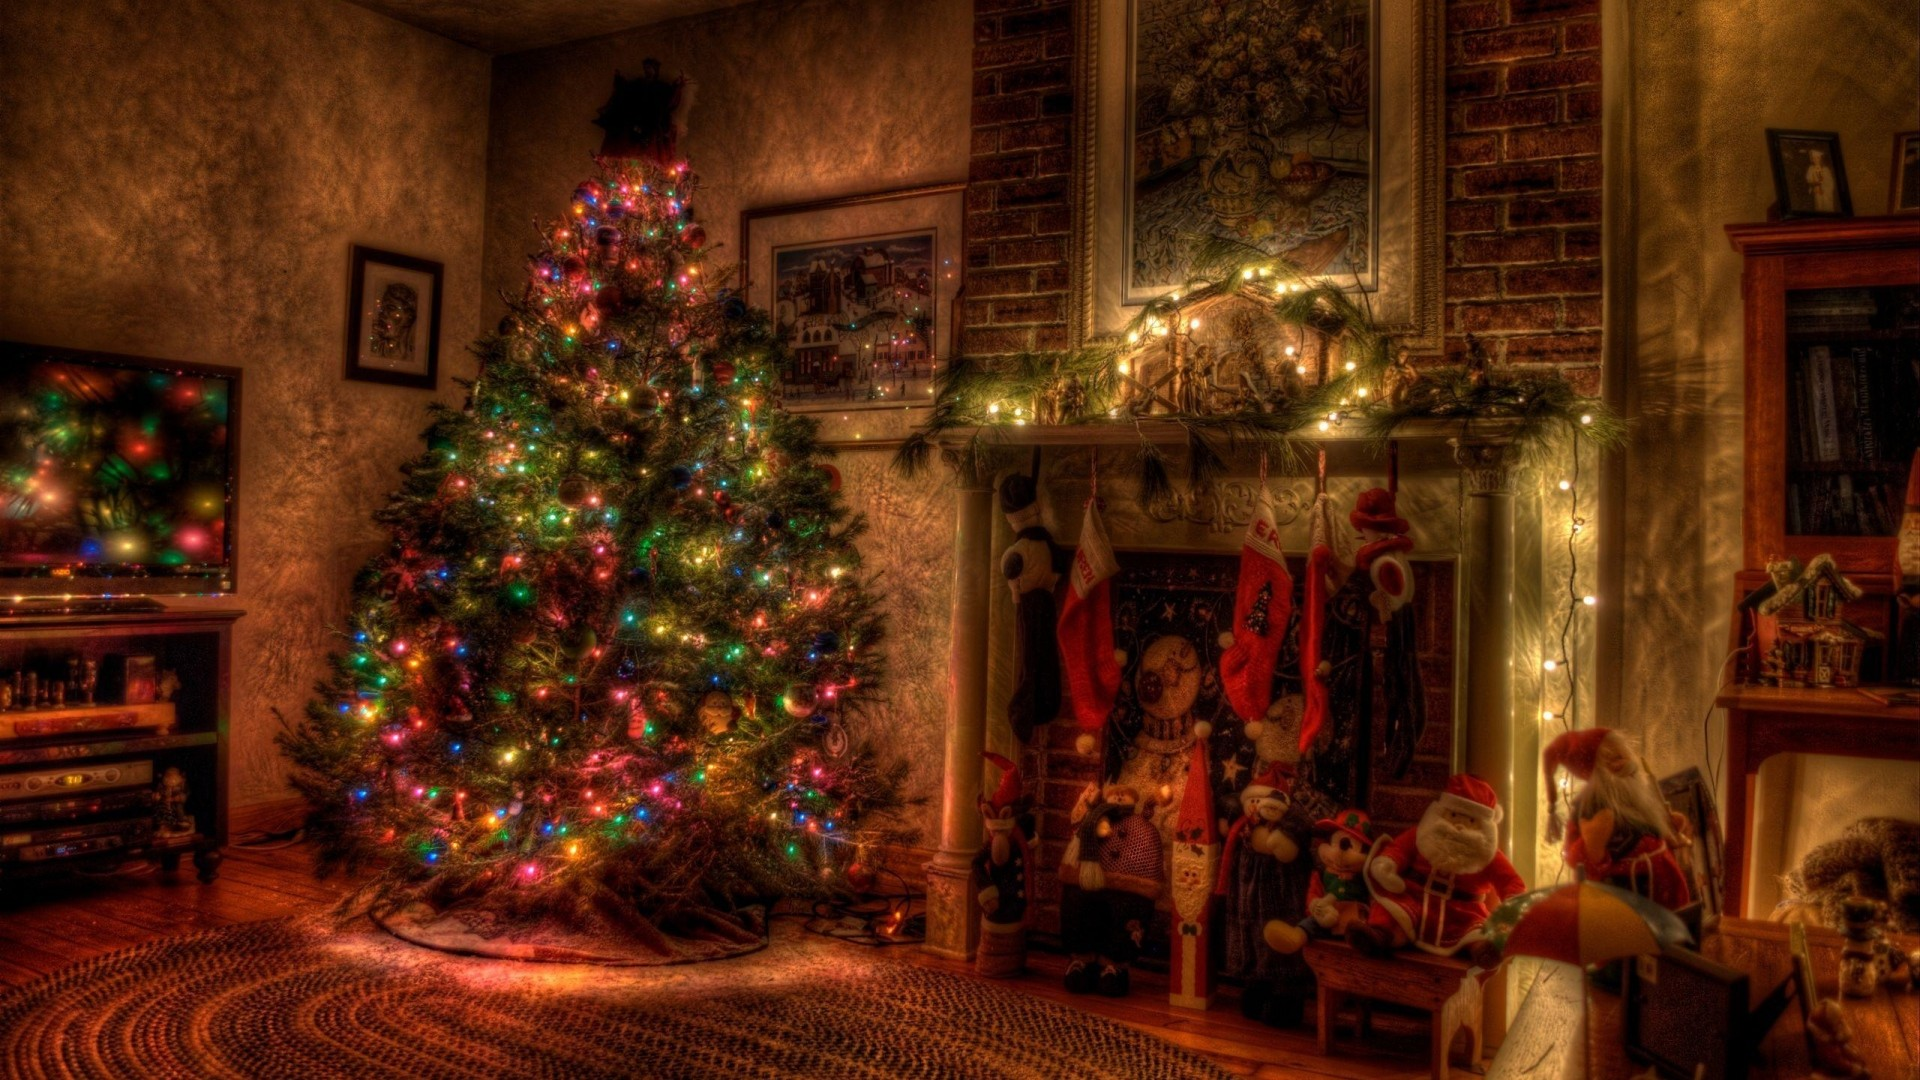 Christmas Wallpaper 1920x1080 80 Images